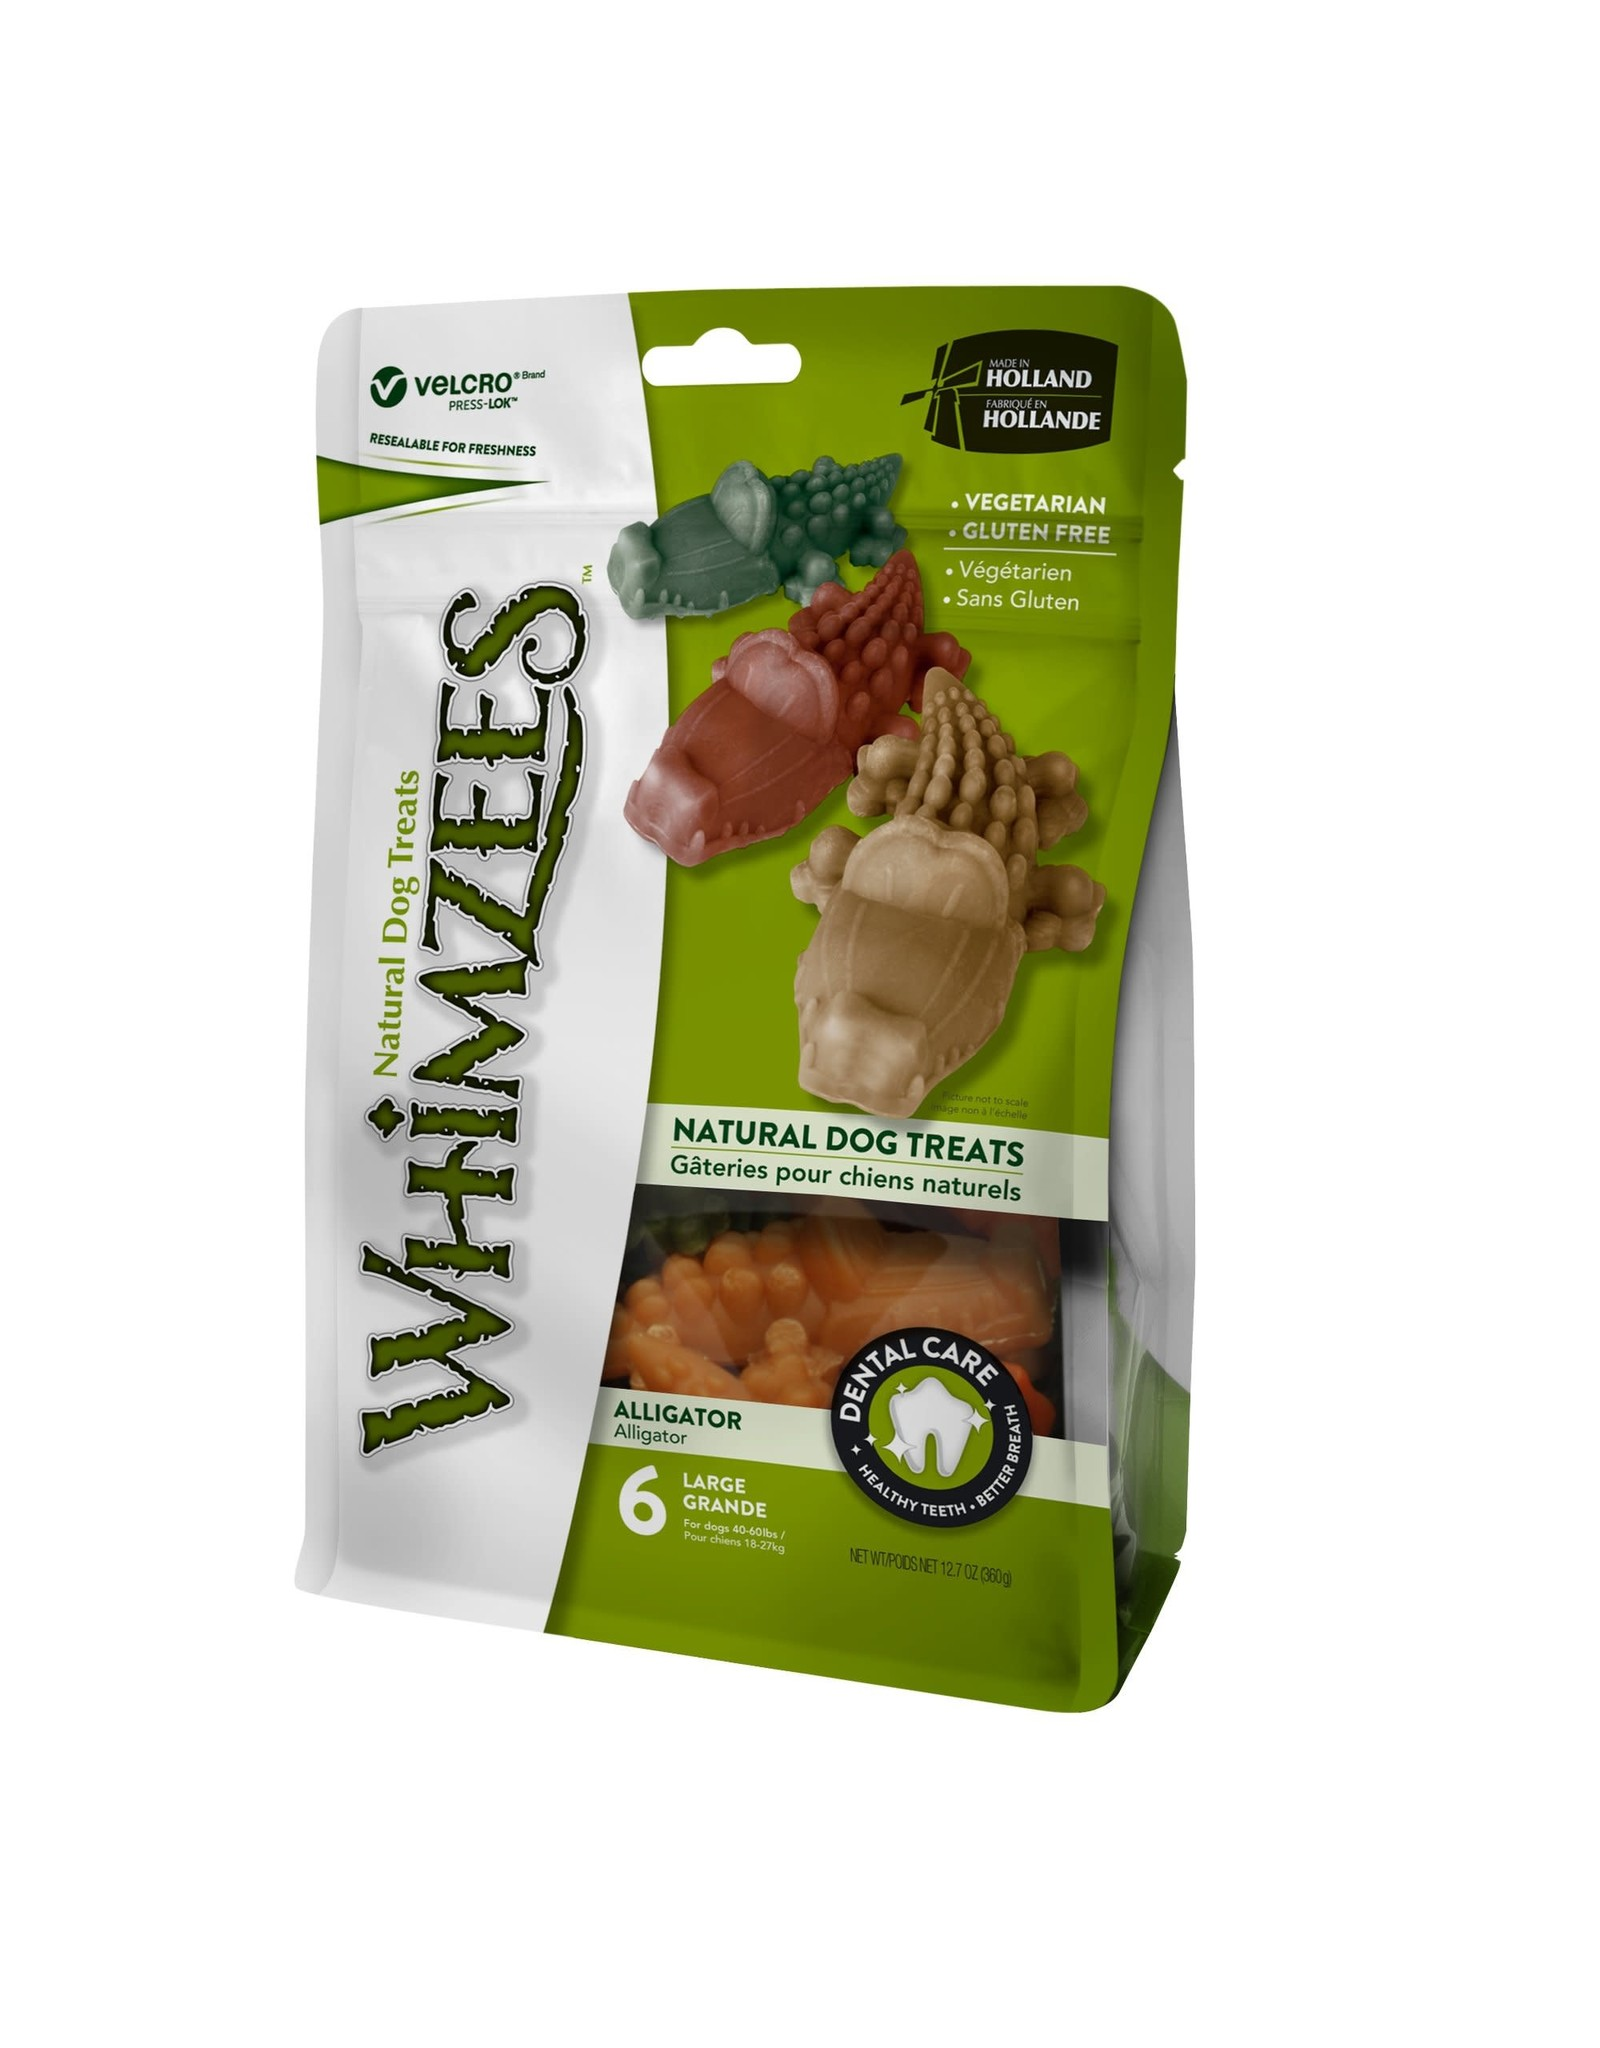 Whimzees WHIMZEES DENTAL TREATS ALLIGATOR LARGE 6-COUNT BAG